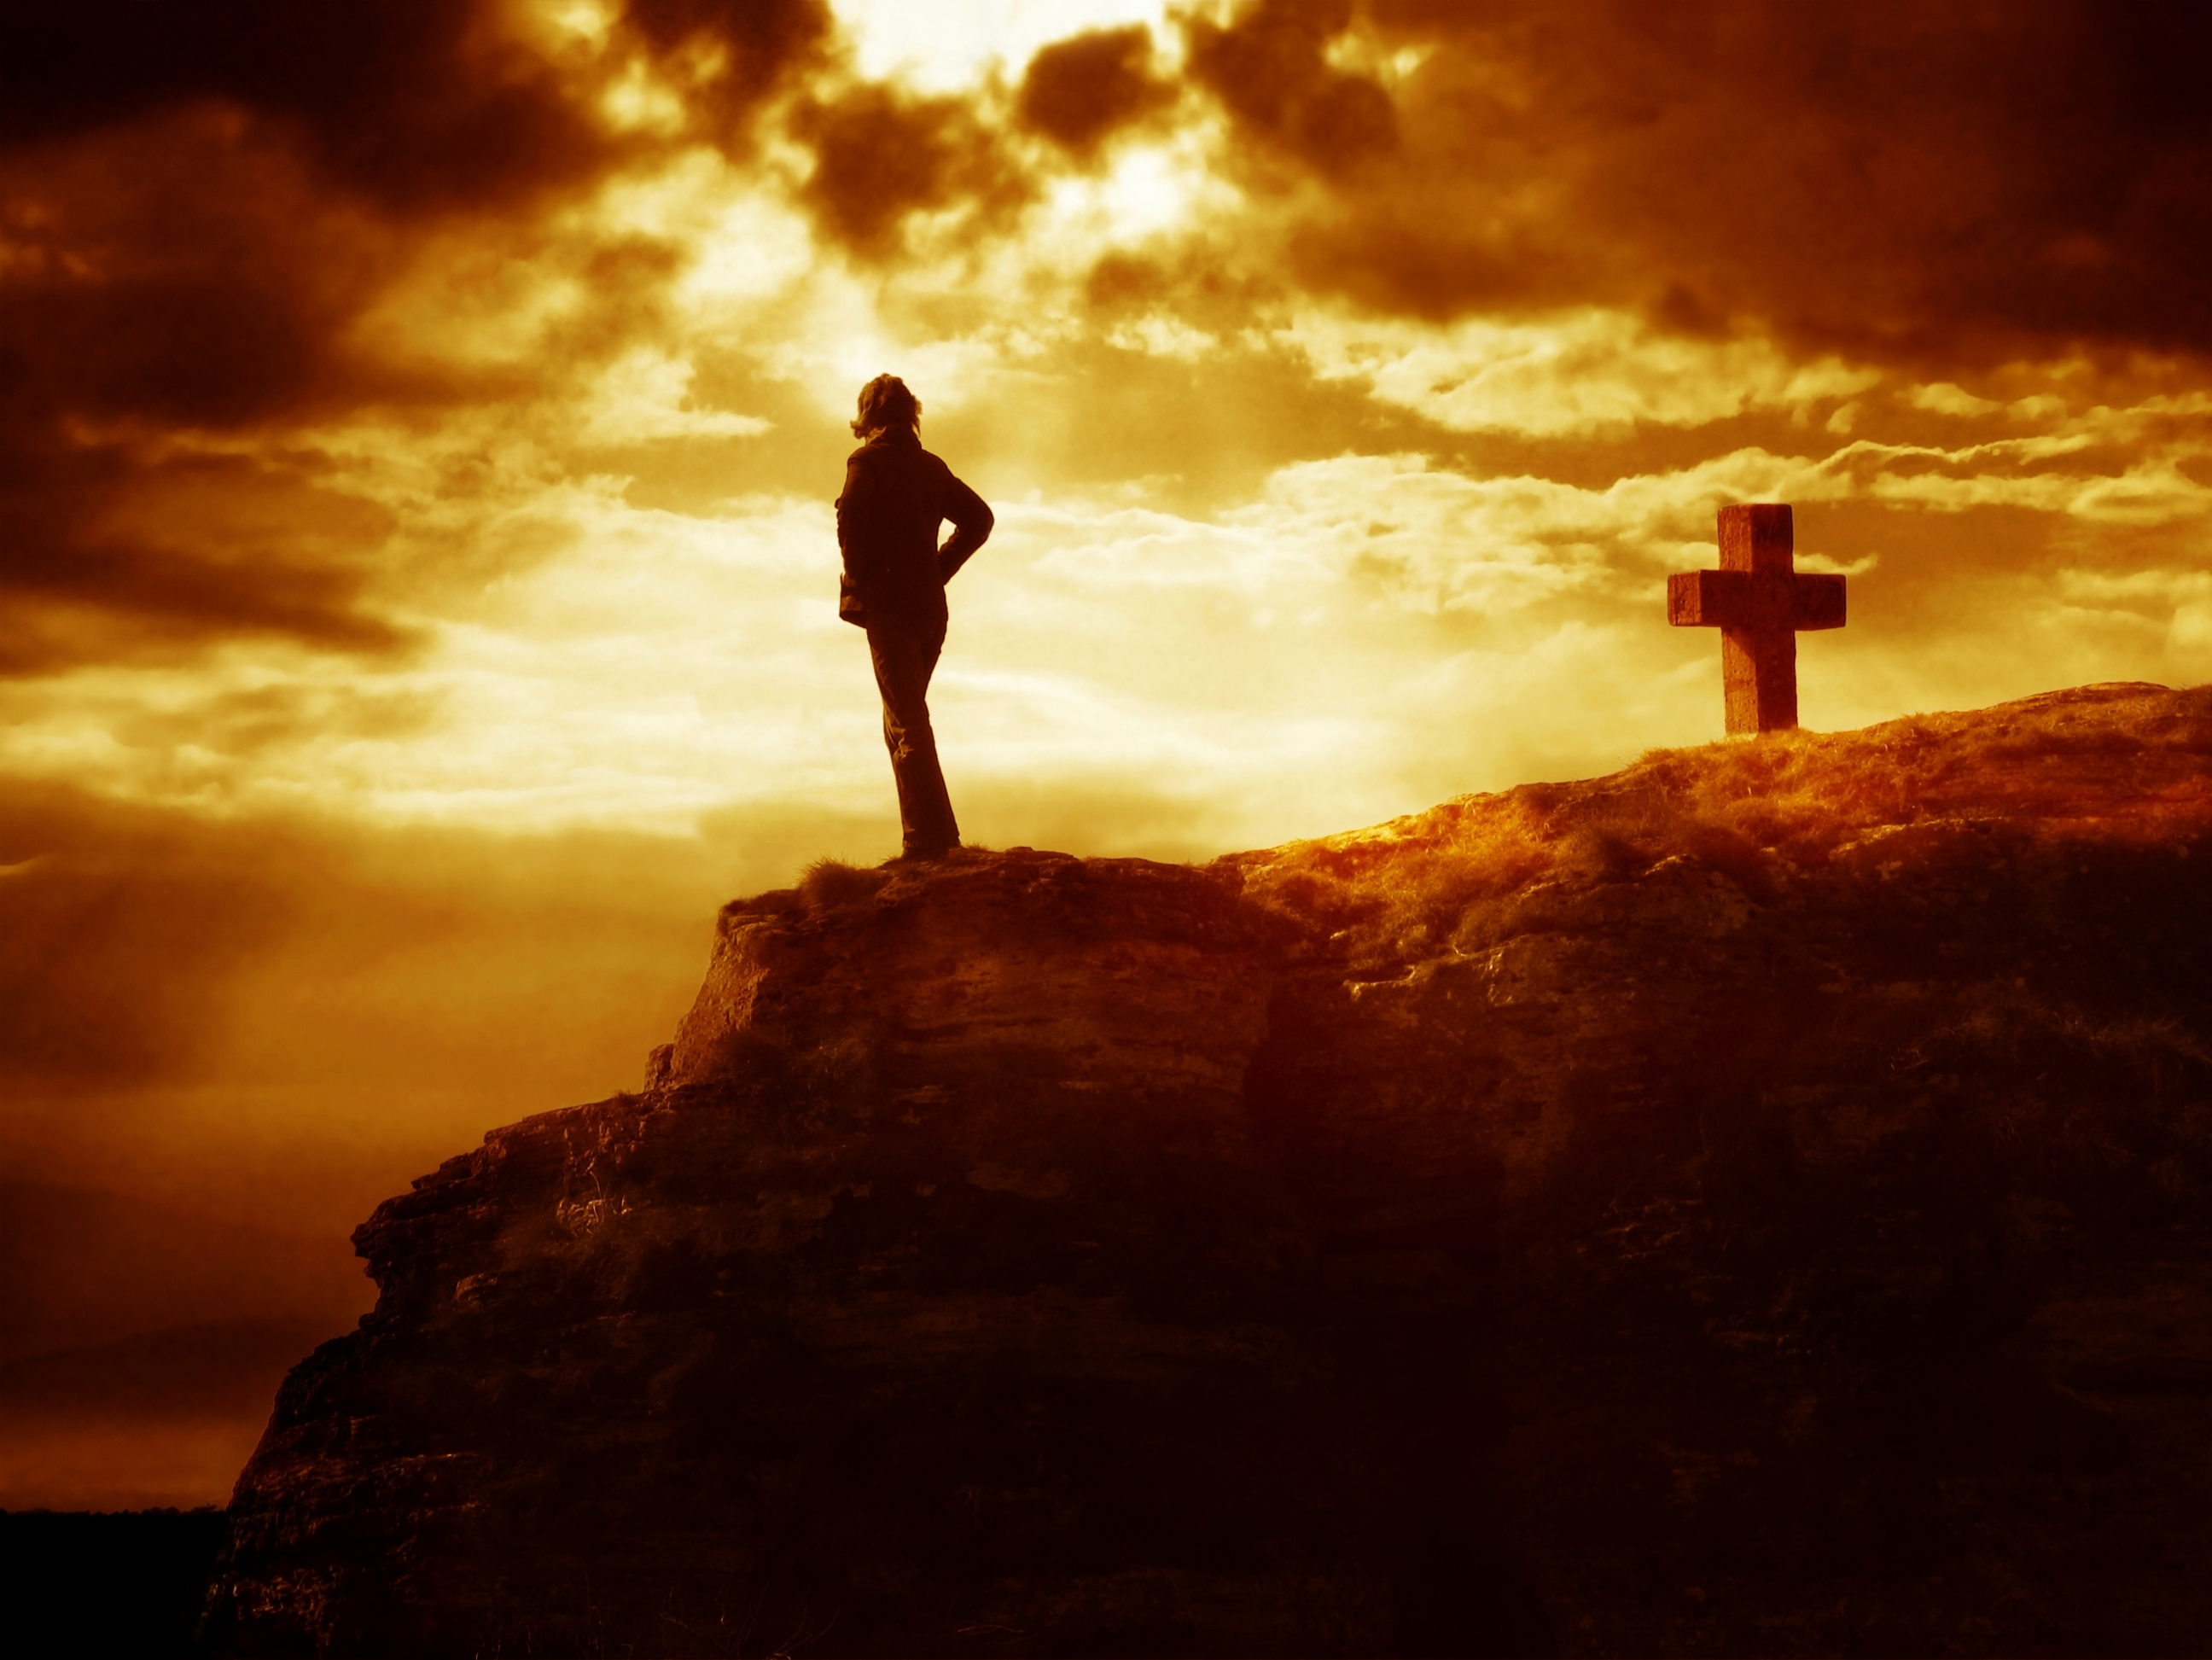 Dramatic sky scenery with a mountain cross and a thinking person. A symbol of heavy inner struggles. Where to go? What do you say?